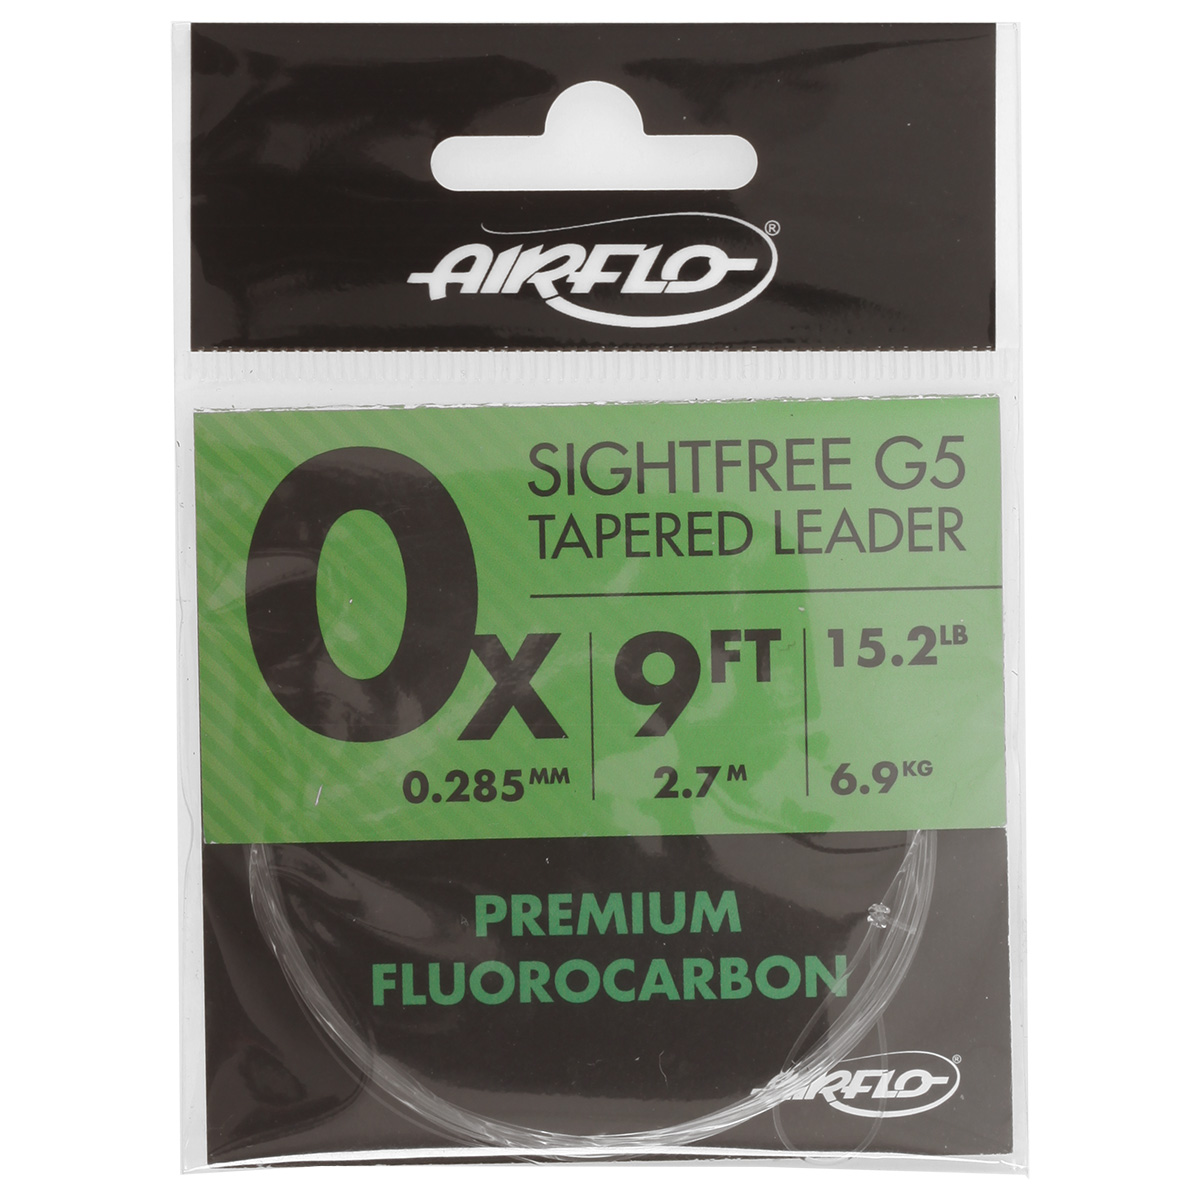 Airflo G5 Tapered Fluorocarbon Leaders